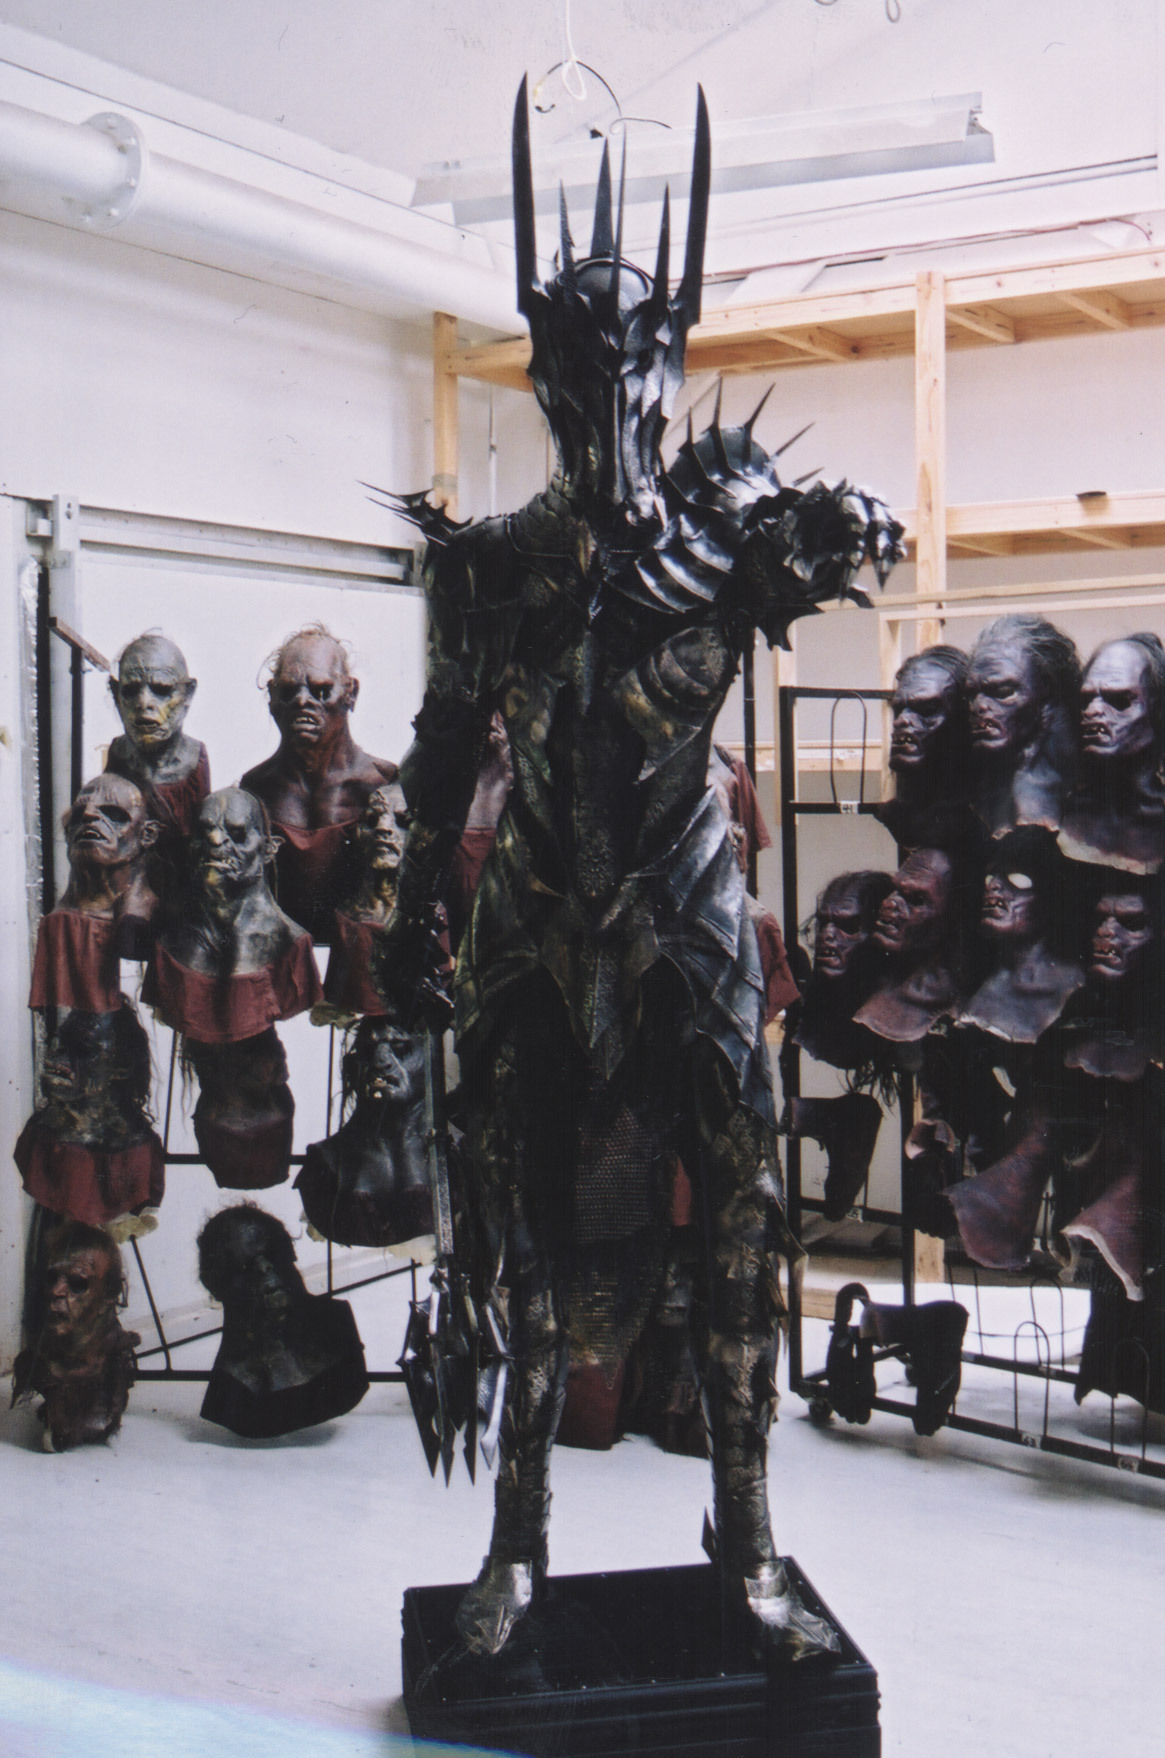 Sauron's armour worn in The Lord Of the Rings